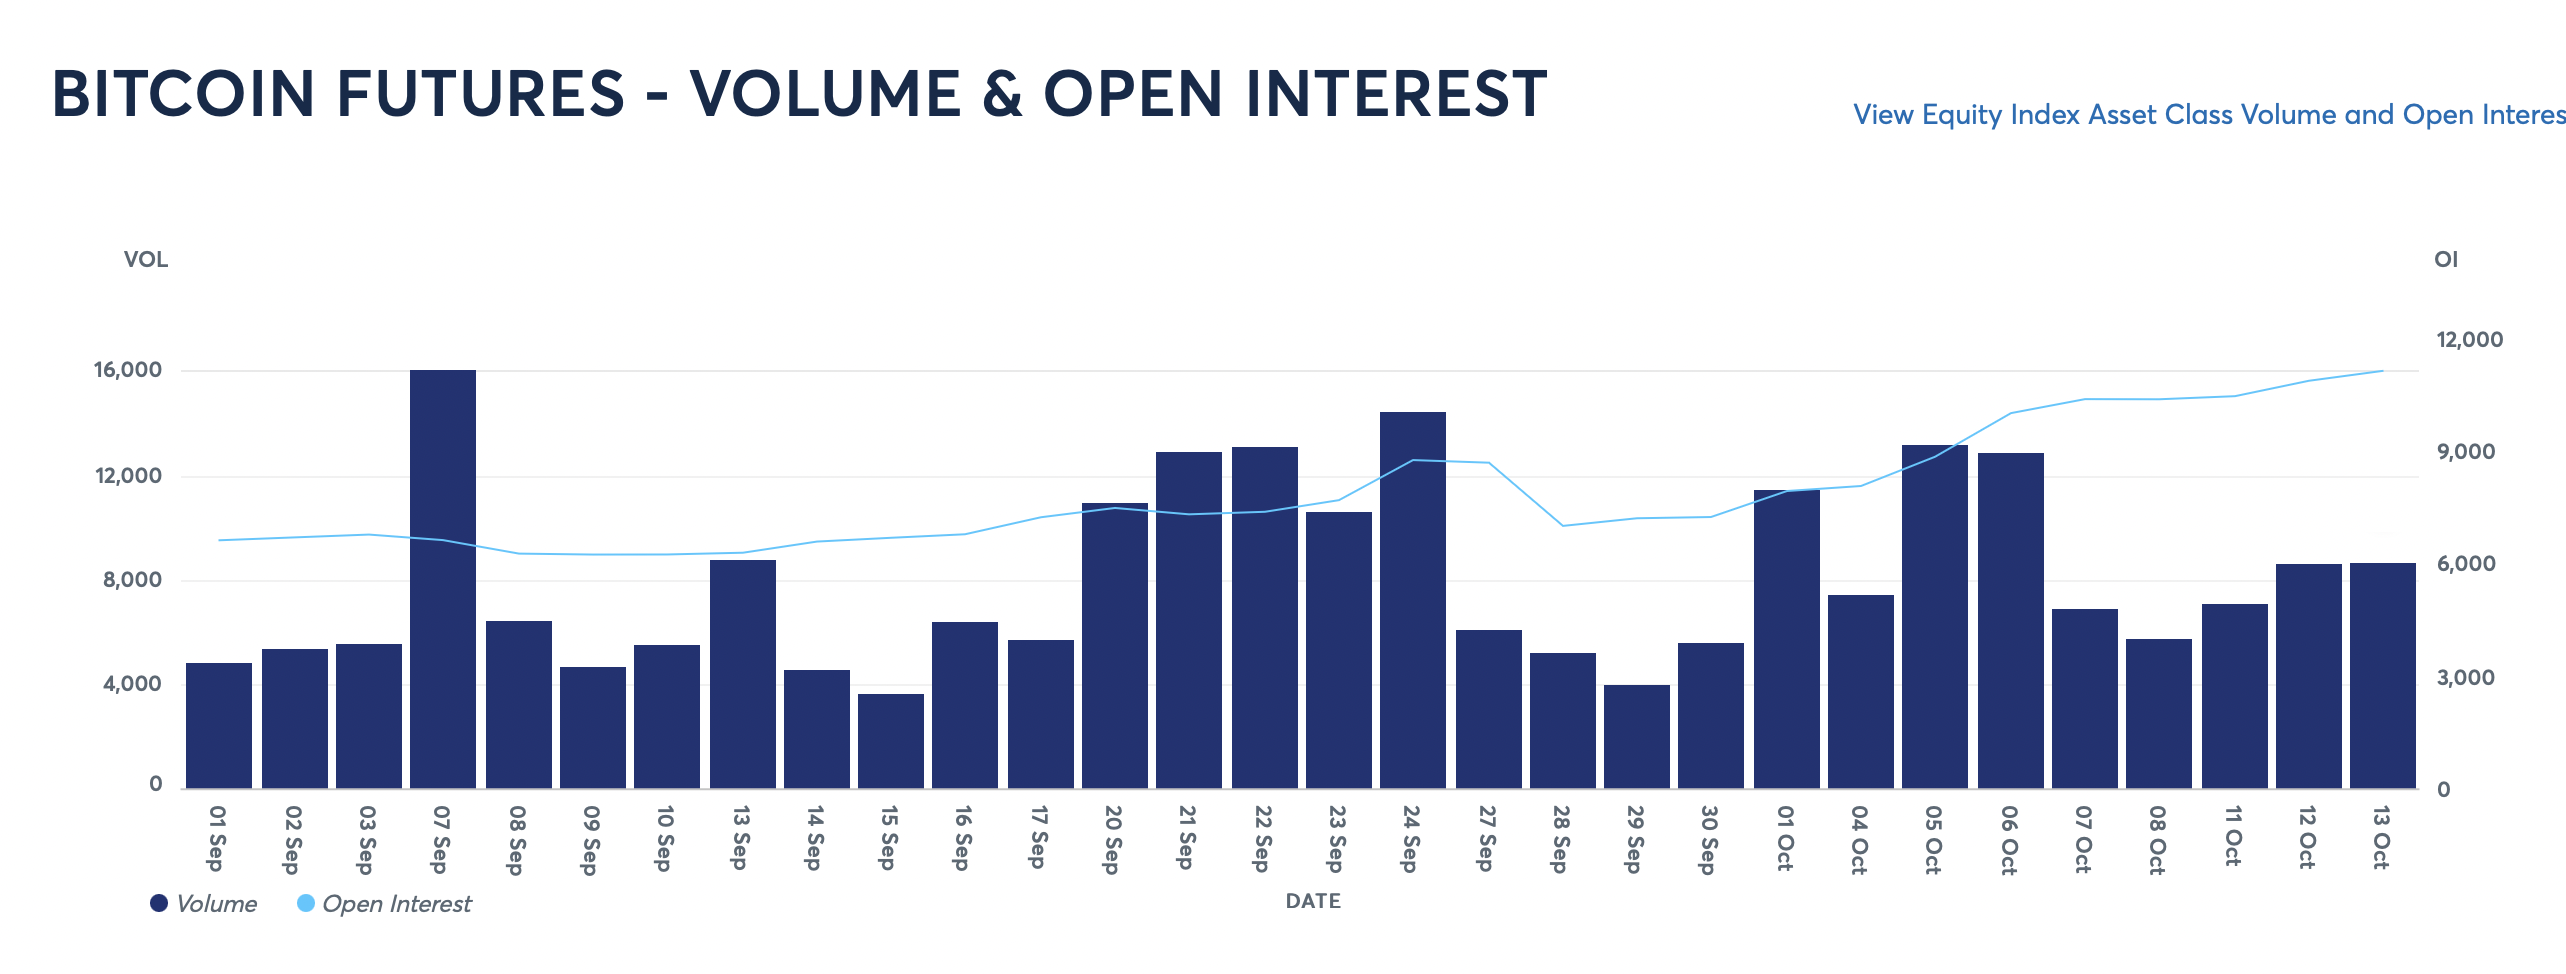 CME Bitcoin futures open interest hits 8-month high, greater than when BTC price was at $65K2